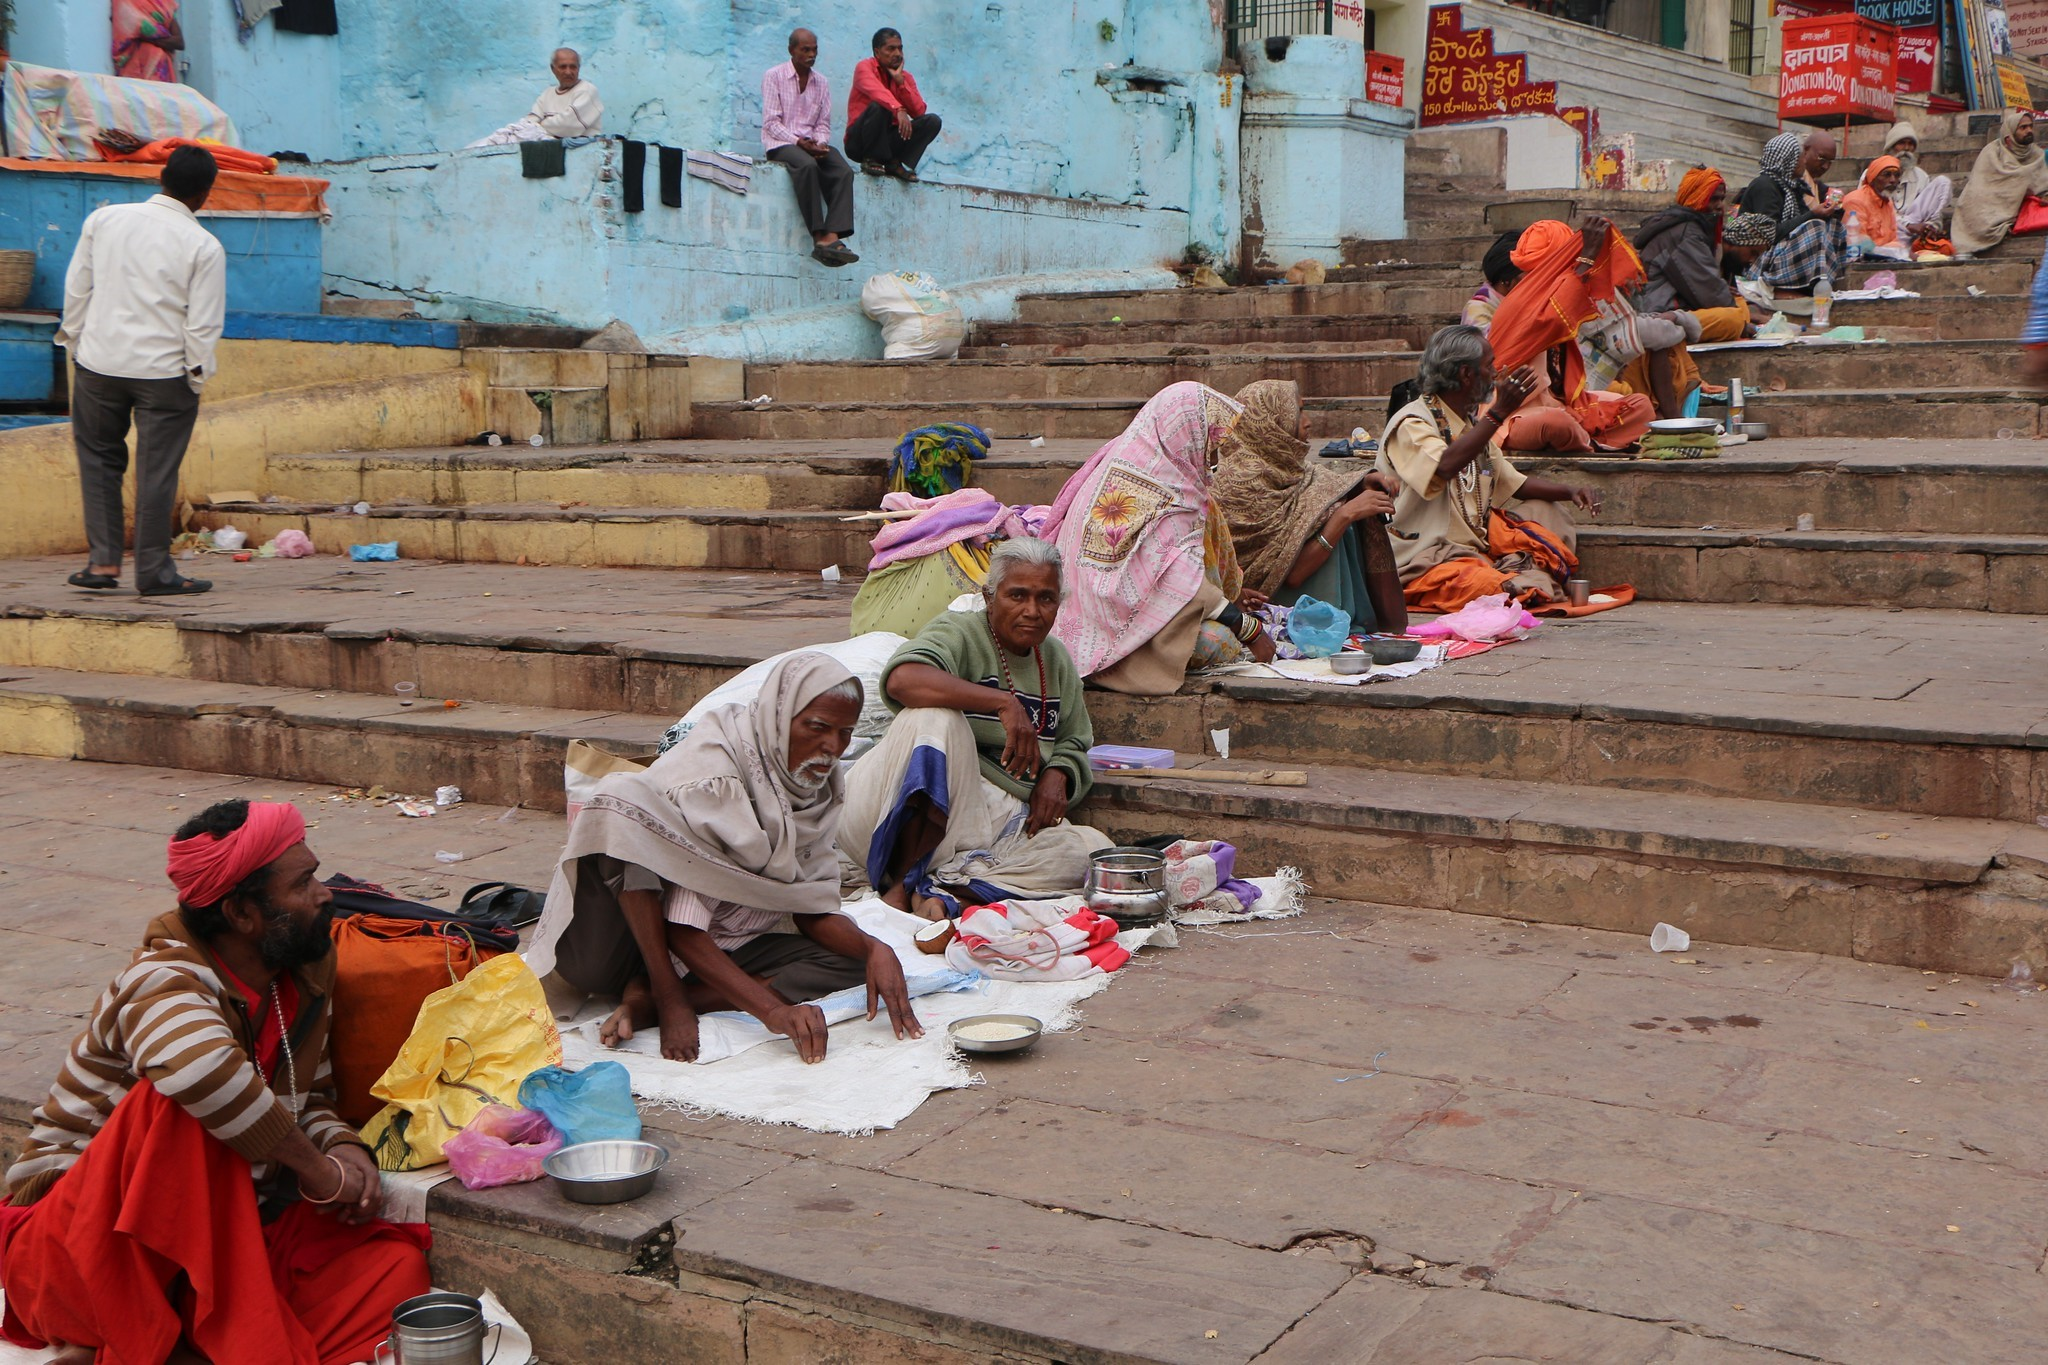 https://borgenproject.org/homelessness-in-india/